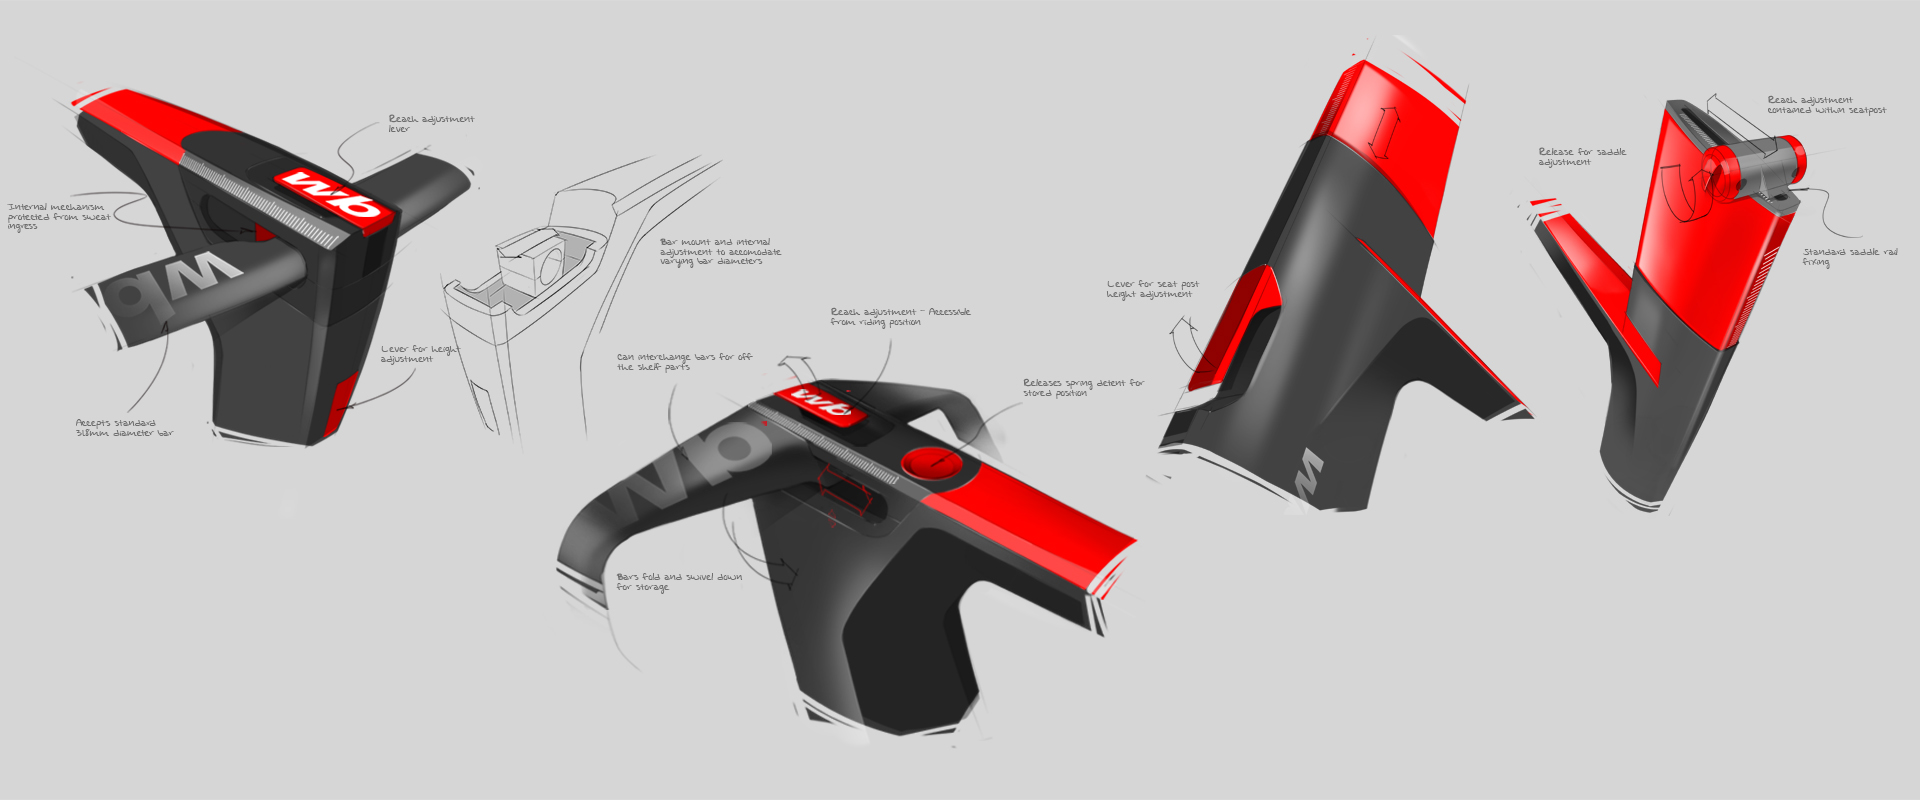 Wattbike Atom | Development sketches